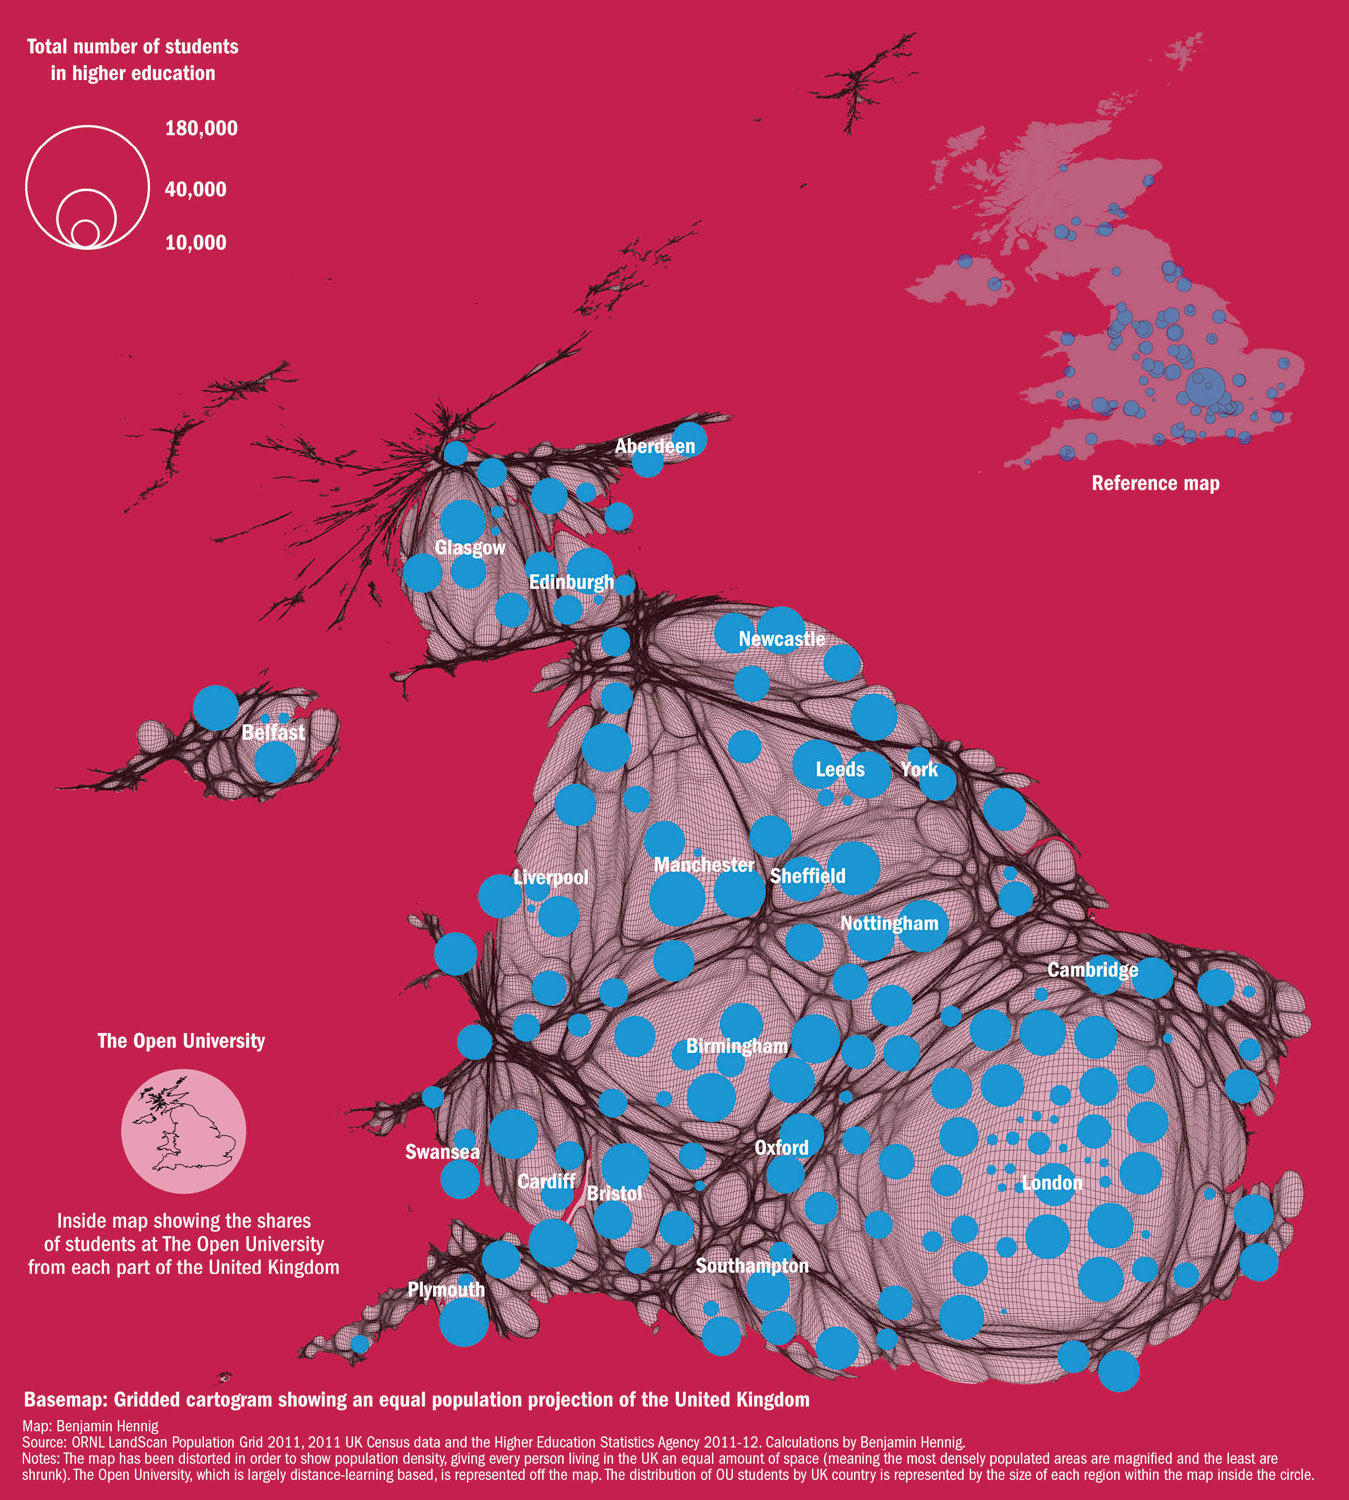 Location and size of universities (by 2011-12 student numbers) on a gridded population cartogram